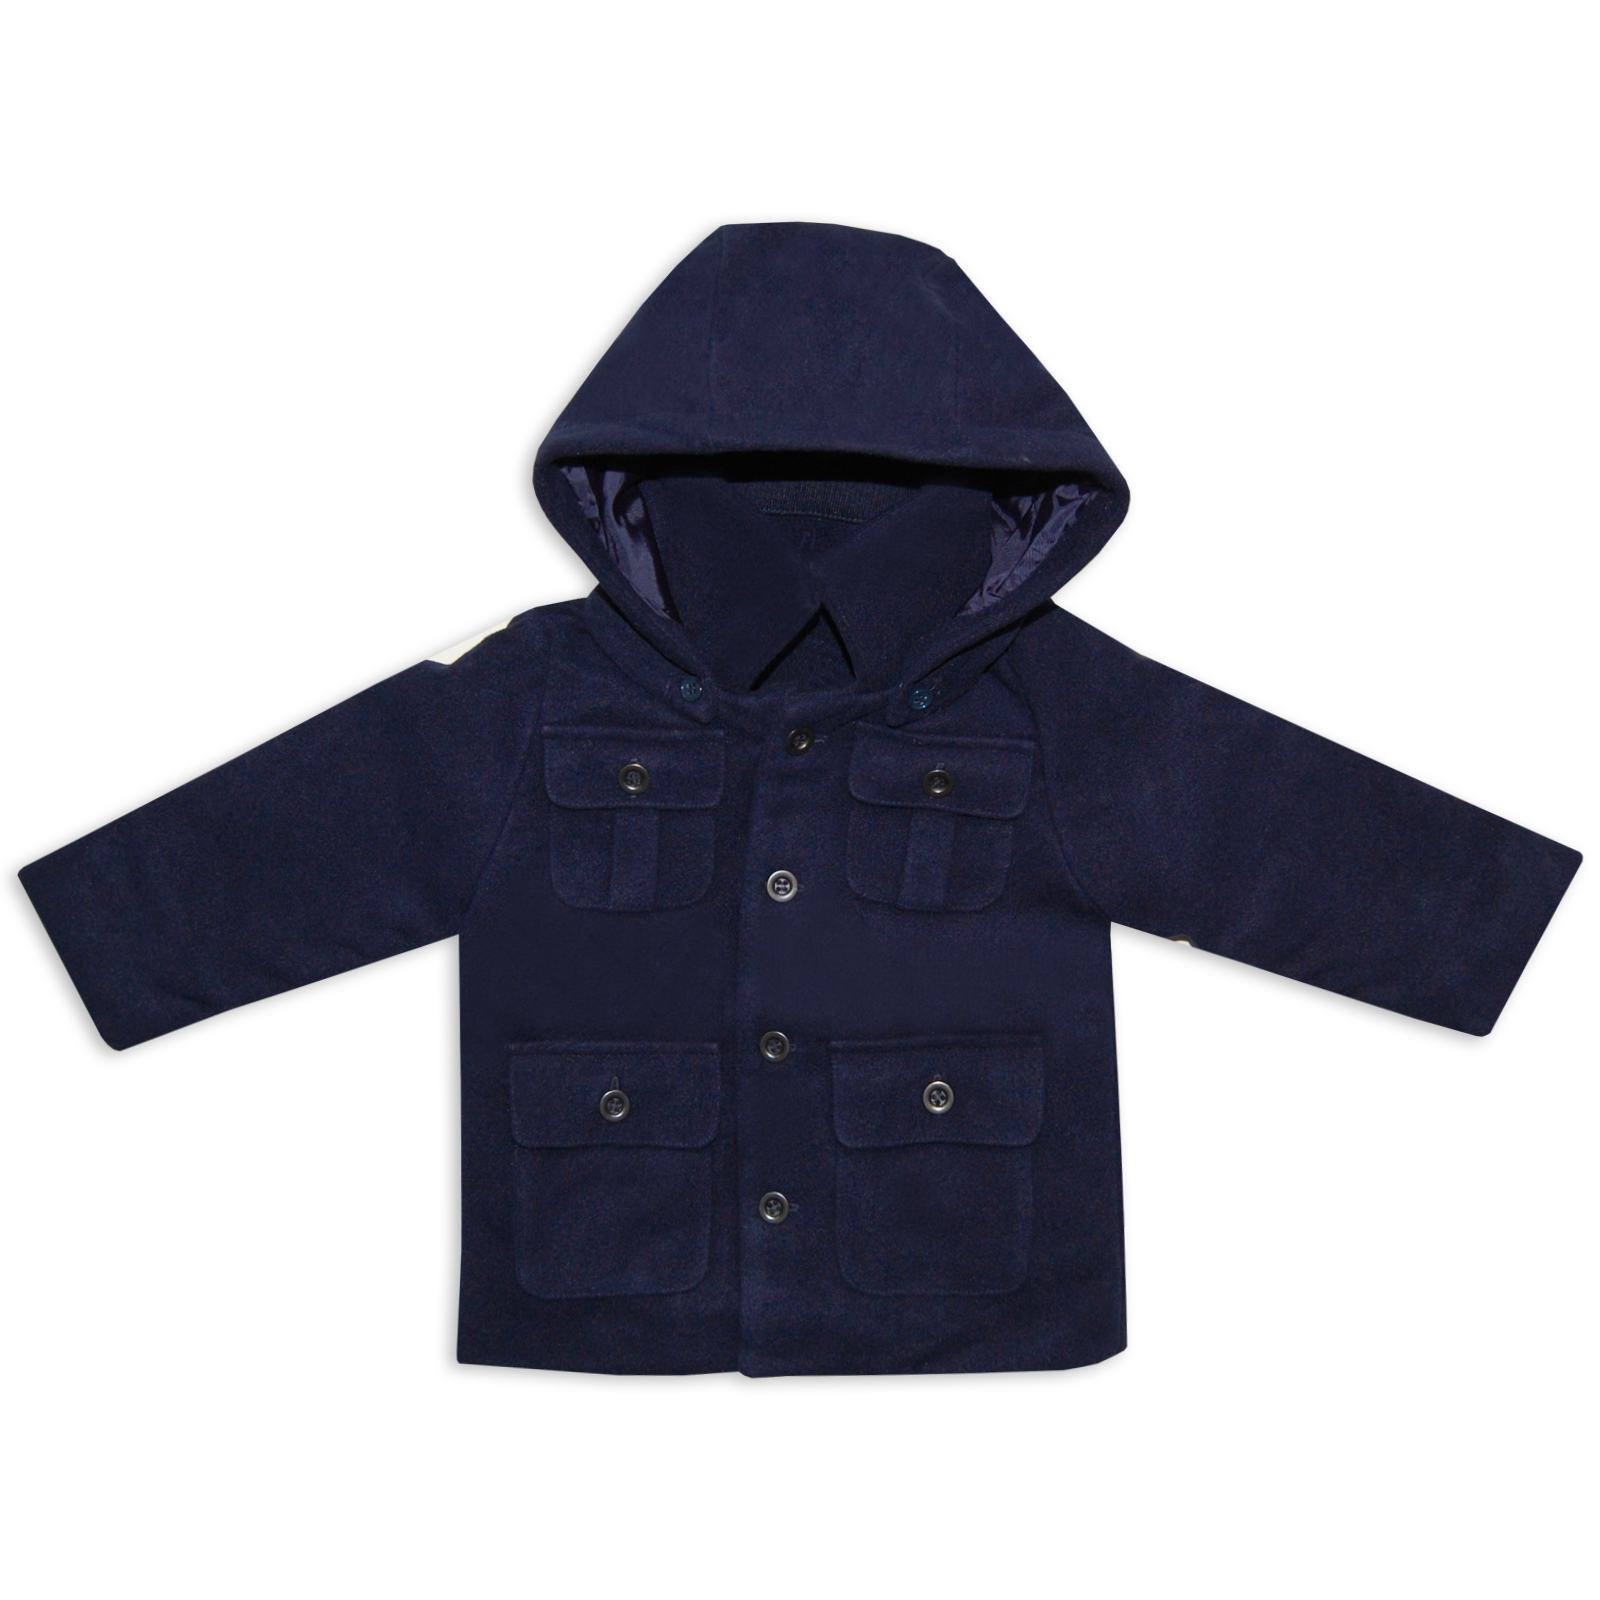 Find great deals on eBay for coat baby boy. Shop with confidence.